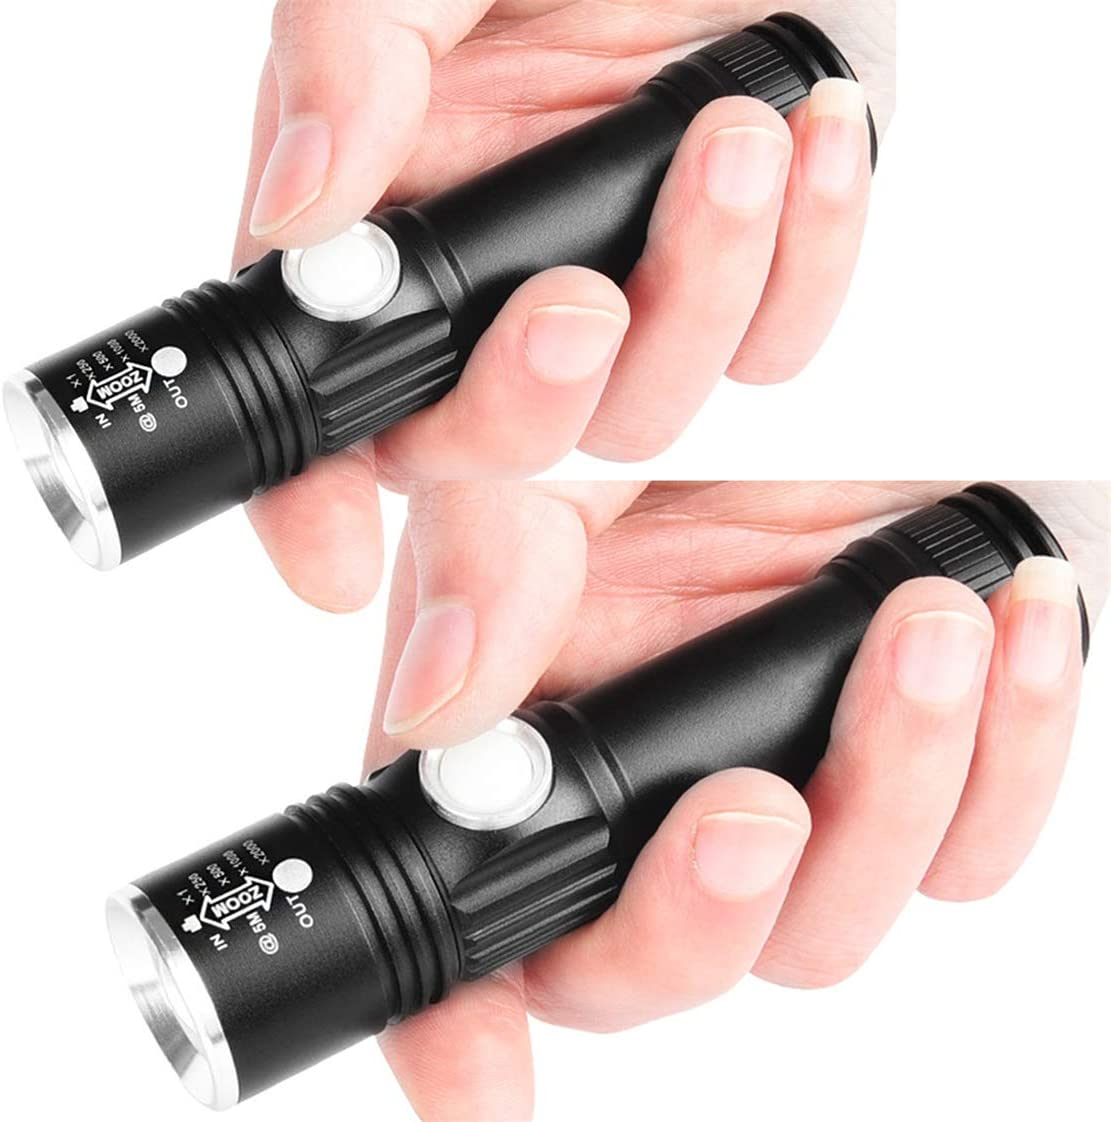 Aceyyk Tactical LED Flashlights 2 Pack, Led USB Rechargeable Flashlight, Handheld Flashlight LED Tactical, with 3 Modes Zoom Function Ultra Bright Torch for Camping Emergency Use